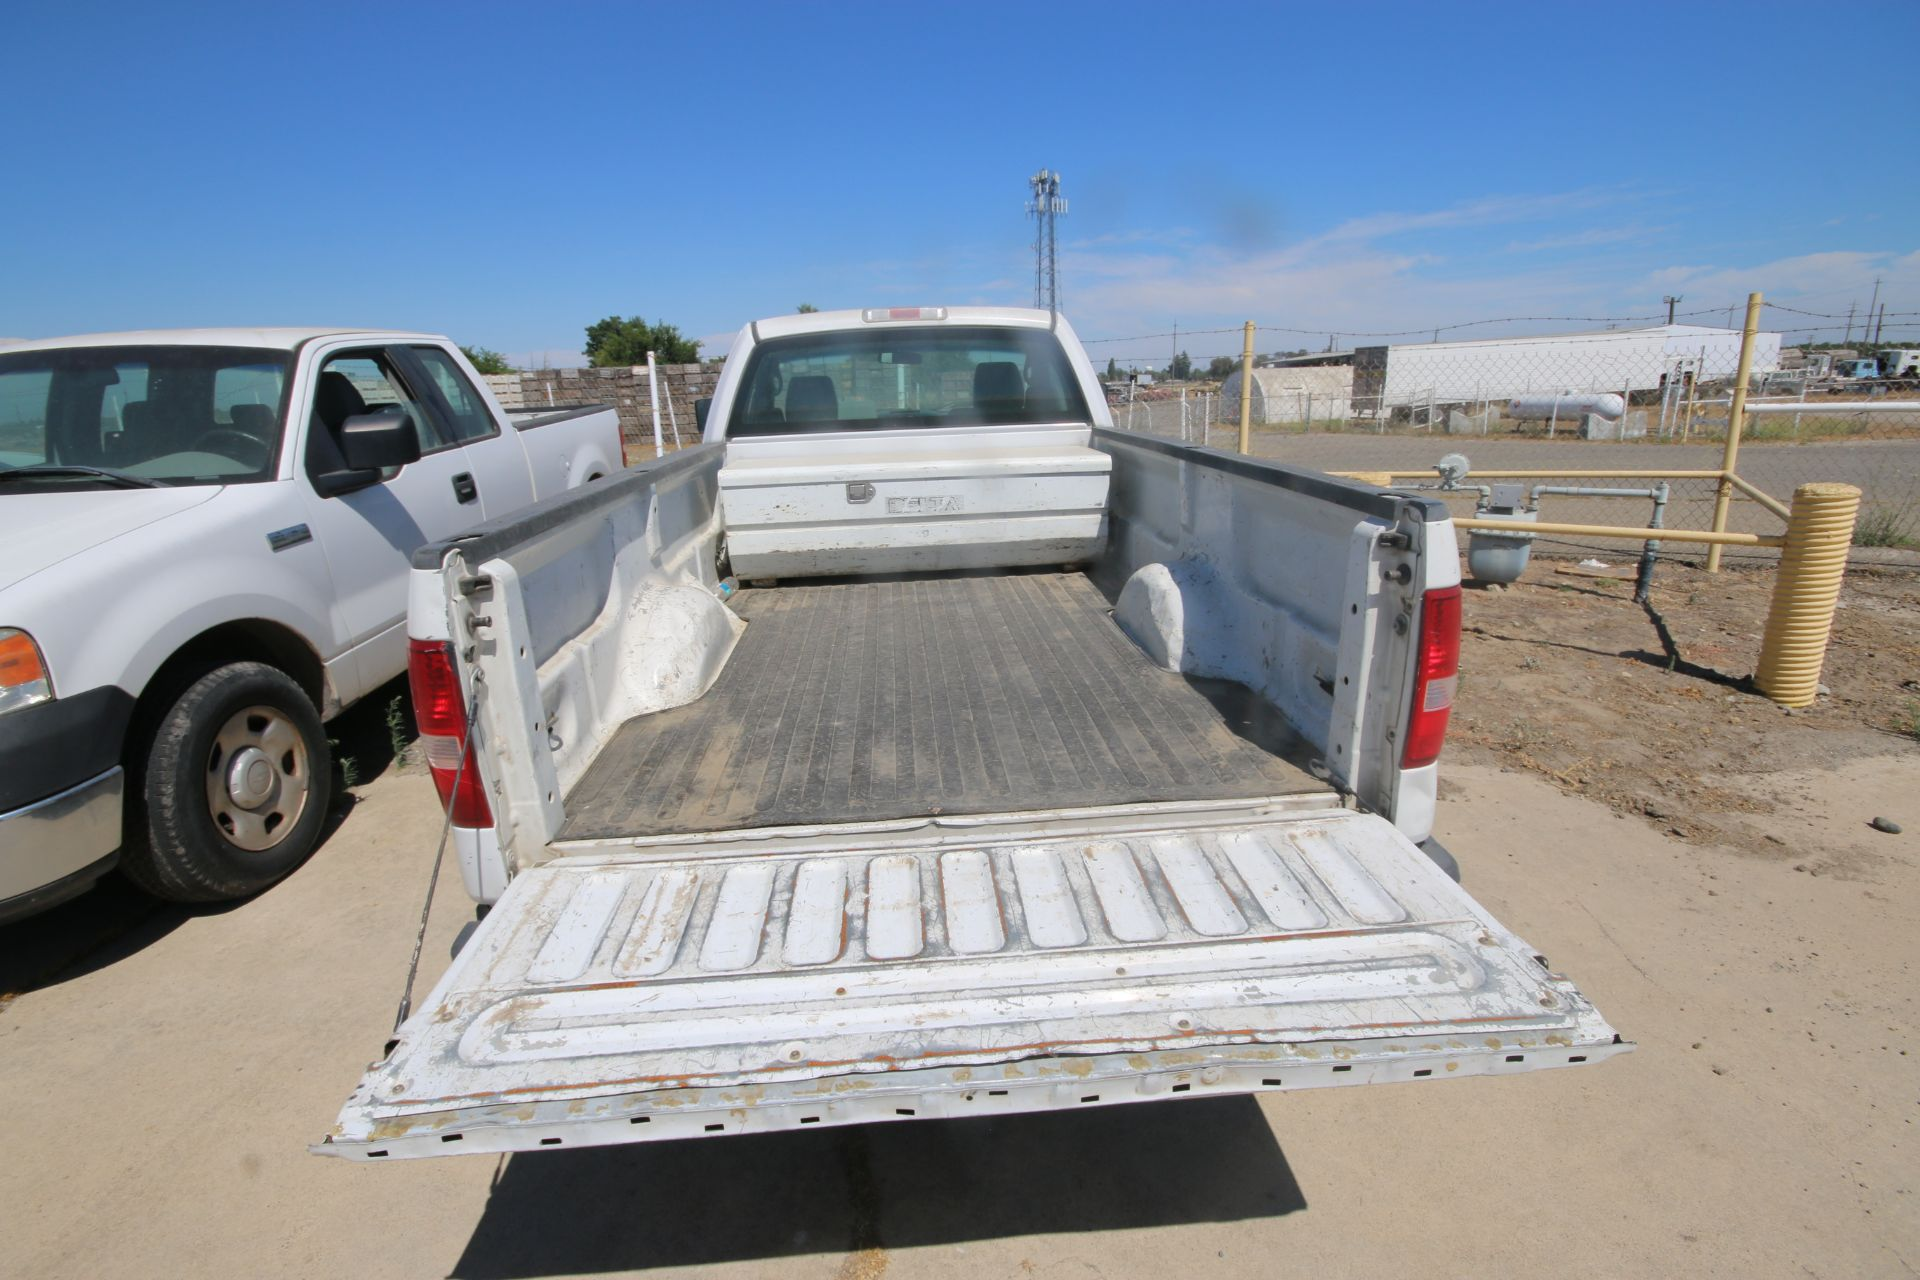 2006 Ford F150 L/B Pick Up Truck, VIN #: 1FTRF12256NA38863, with 167,638 Miles, Started Up as of - Image 9 of 18